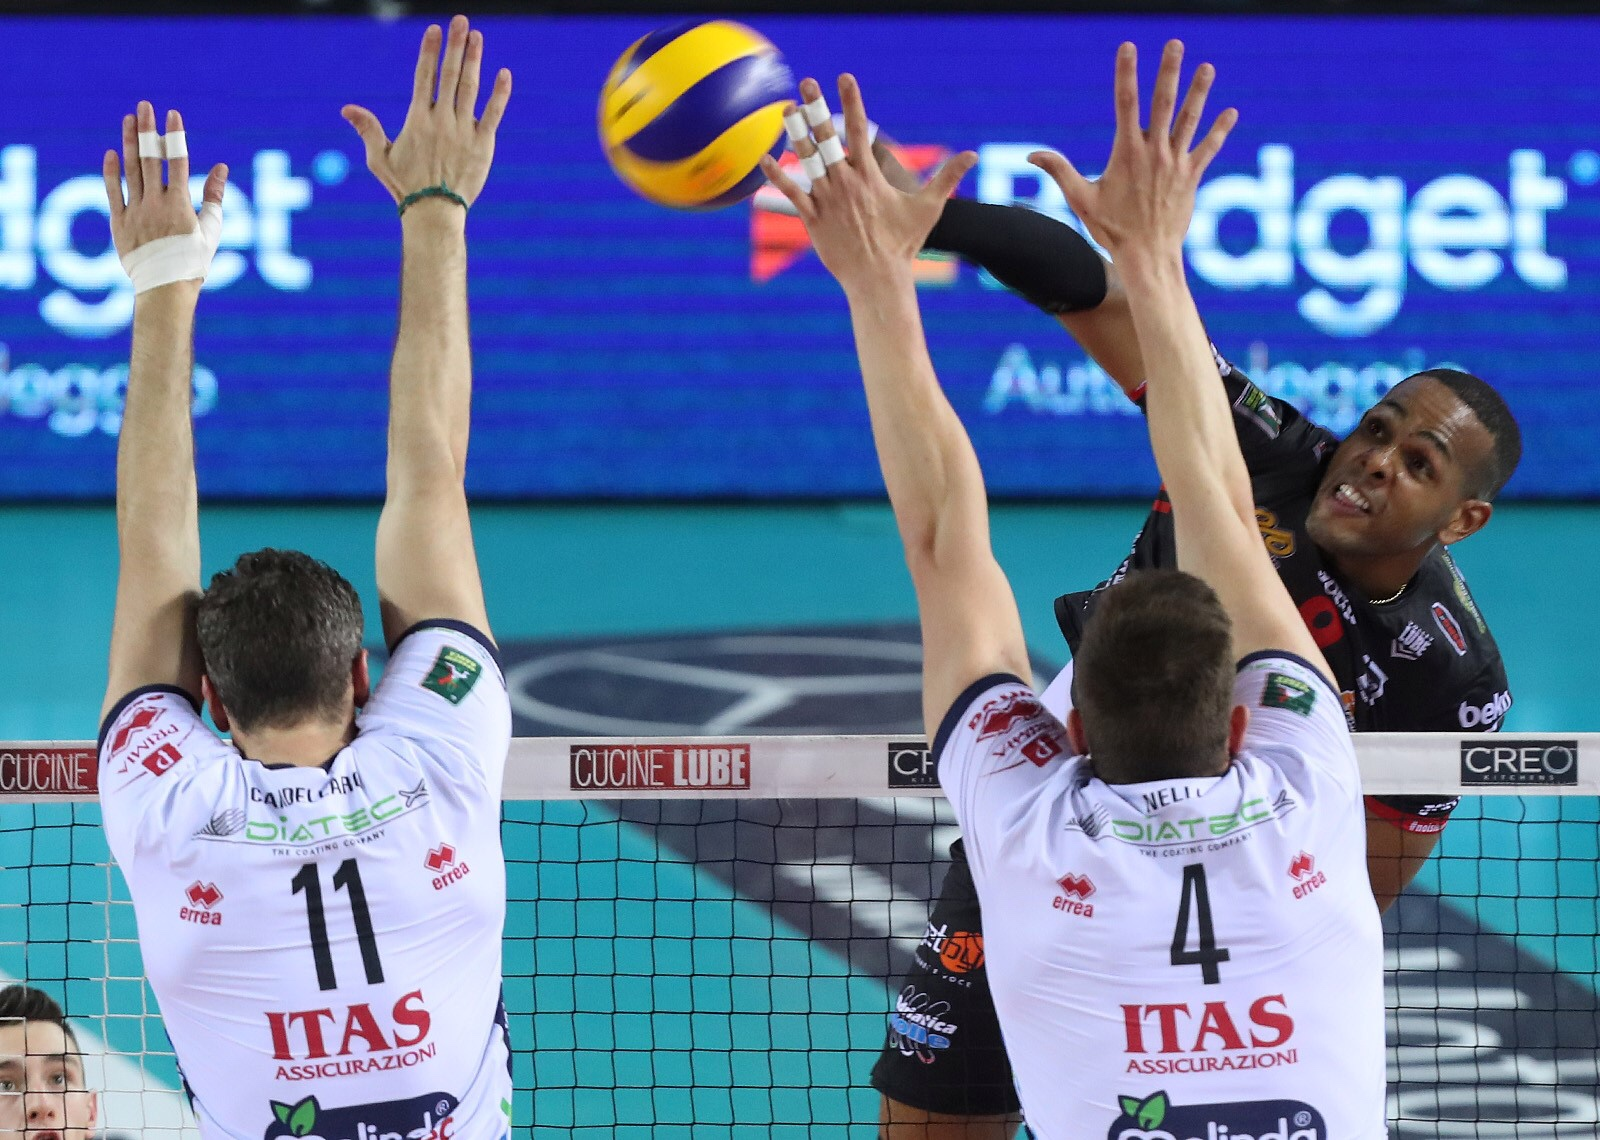 #Superlega: Modena tie the series against Perugia, Lube close to claim the spot in the finals